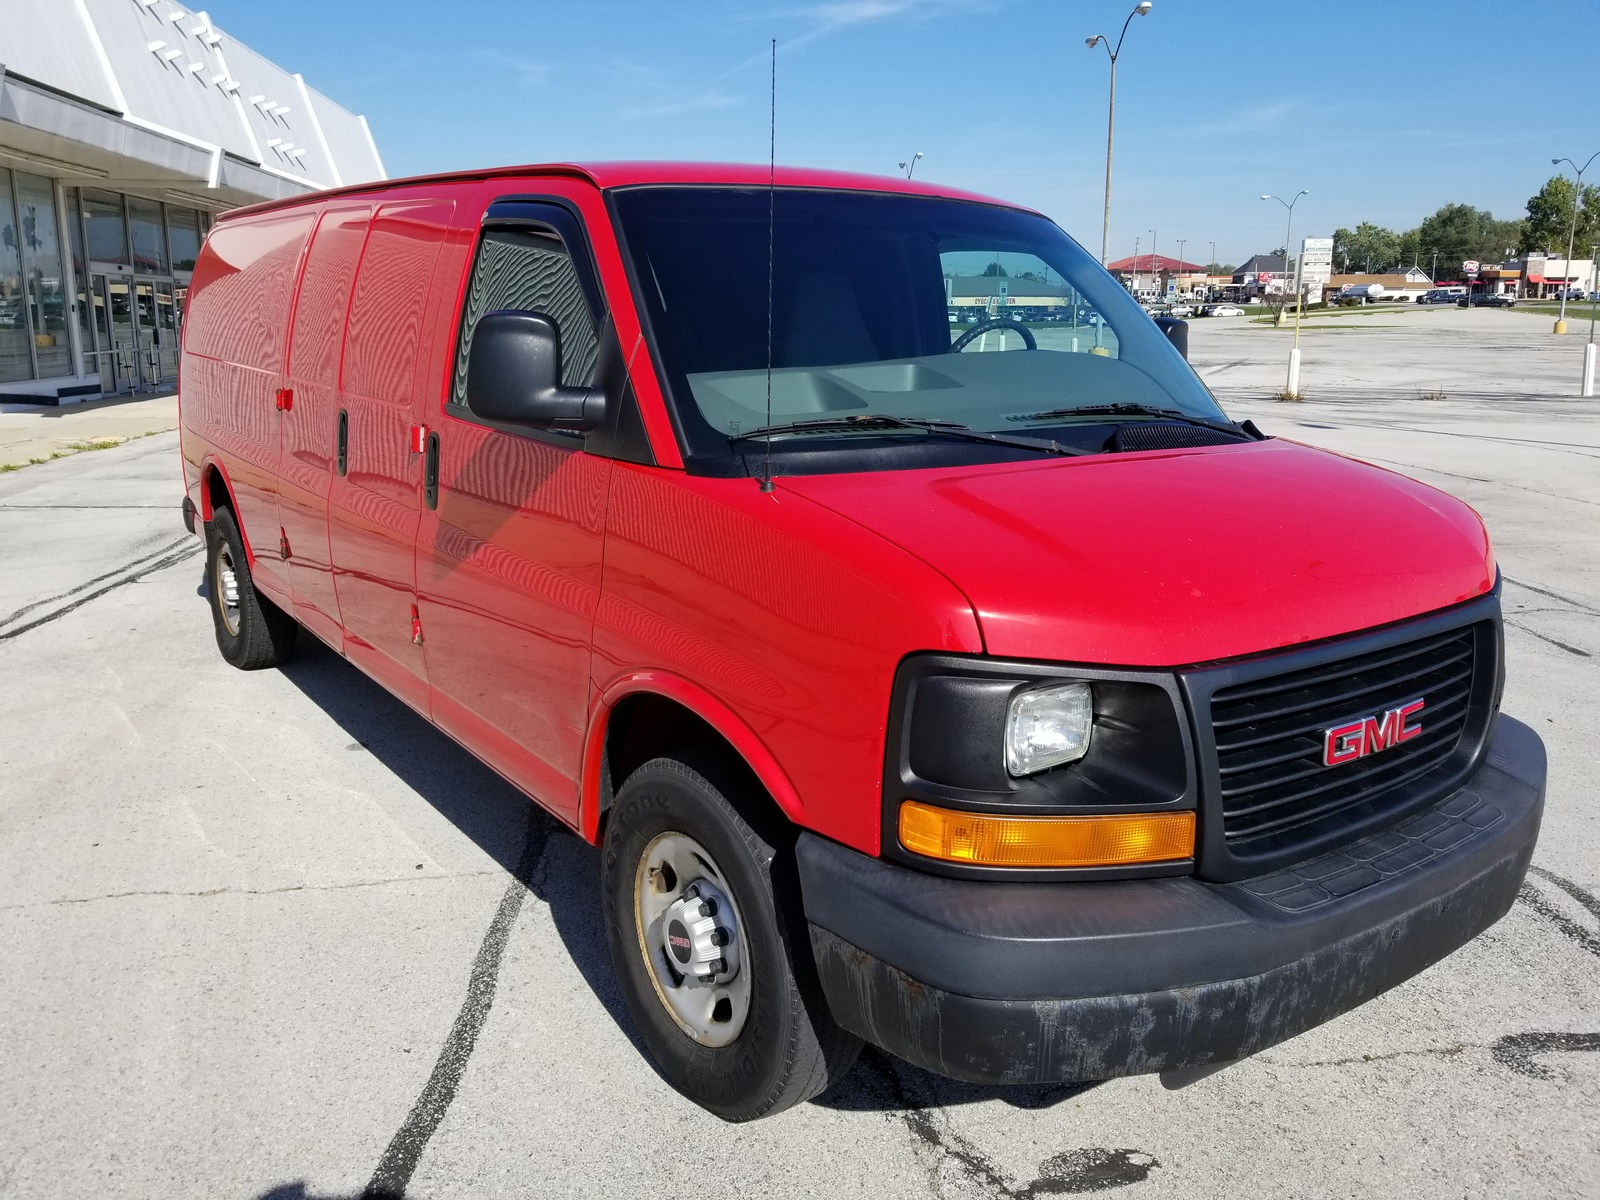 2007 chevrolet express overview cargurus picture of 2007 chevrolet express cargo 3500 extended rwd exterior galleryworthy fandeluxe Image collections